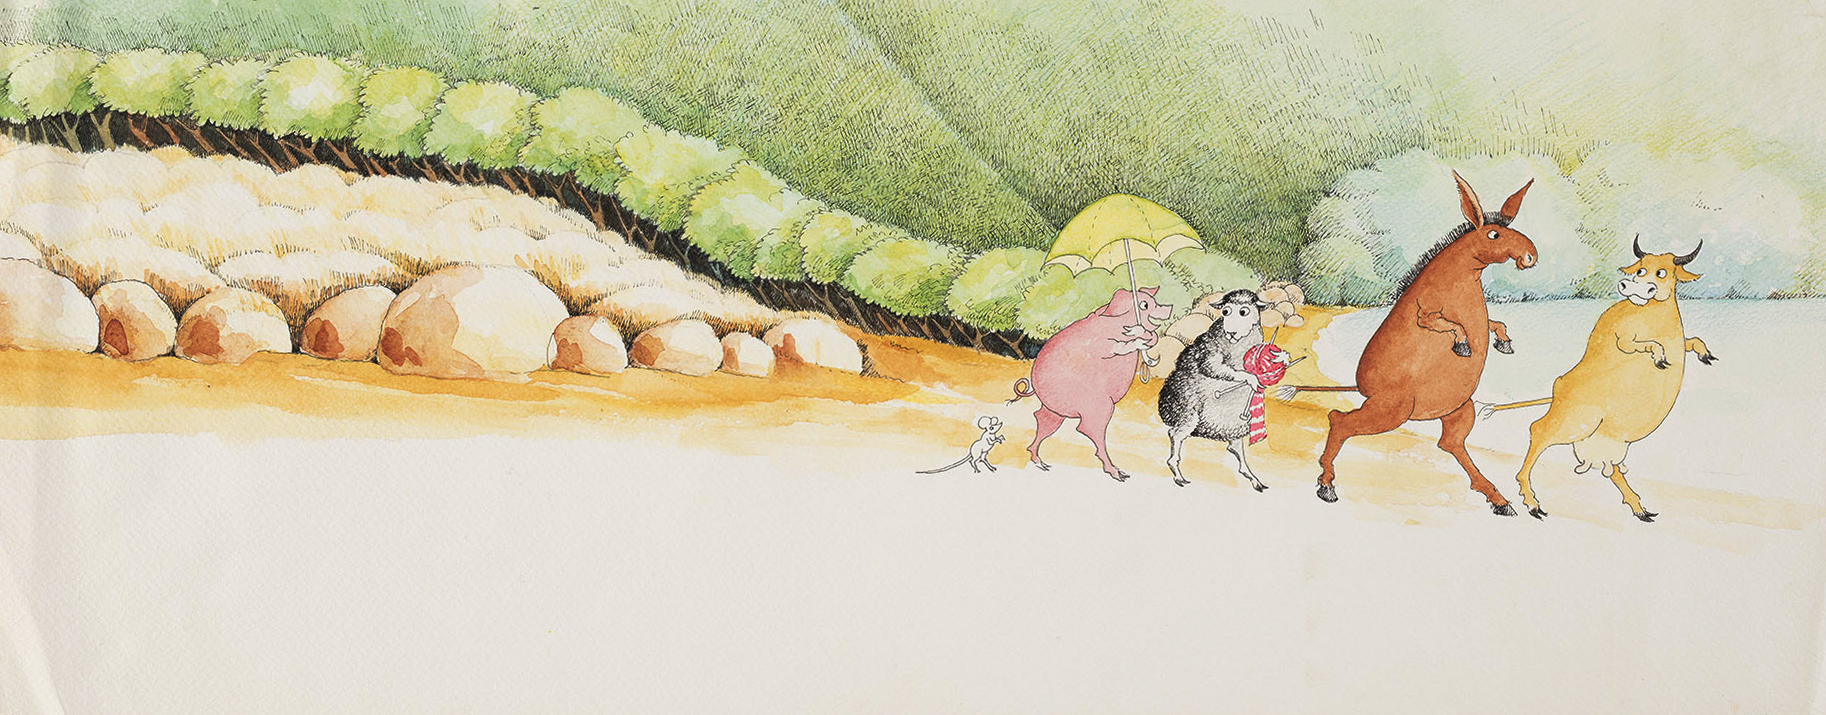 A cow, a donkey, a sheep, a pig, and a tiny mouse are walking along the seaside.